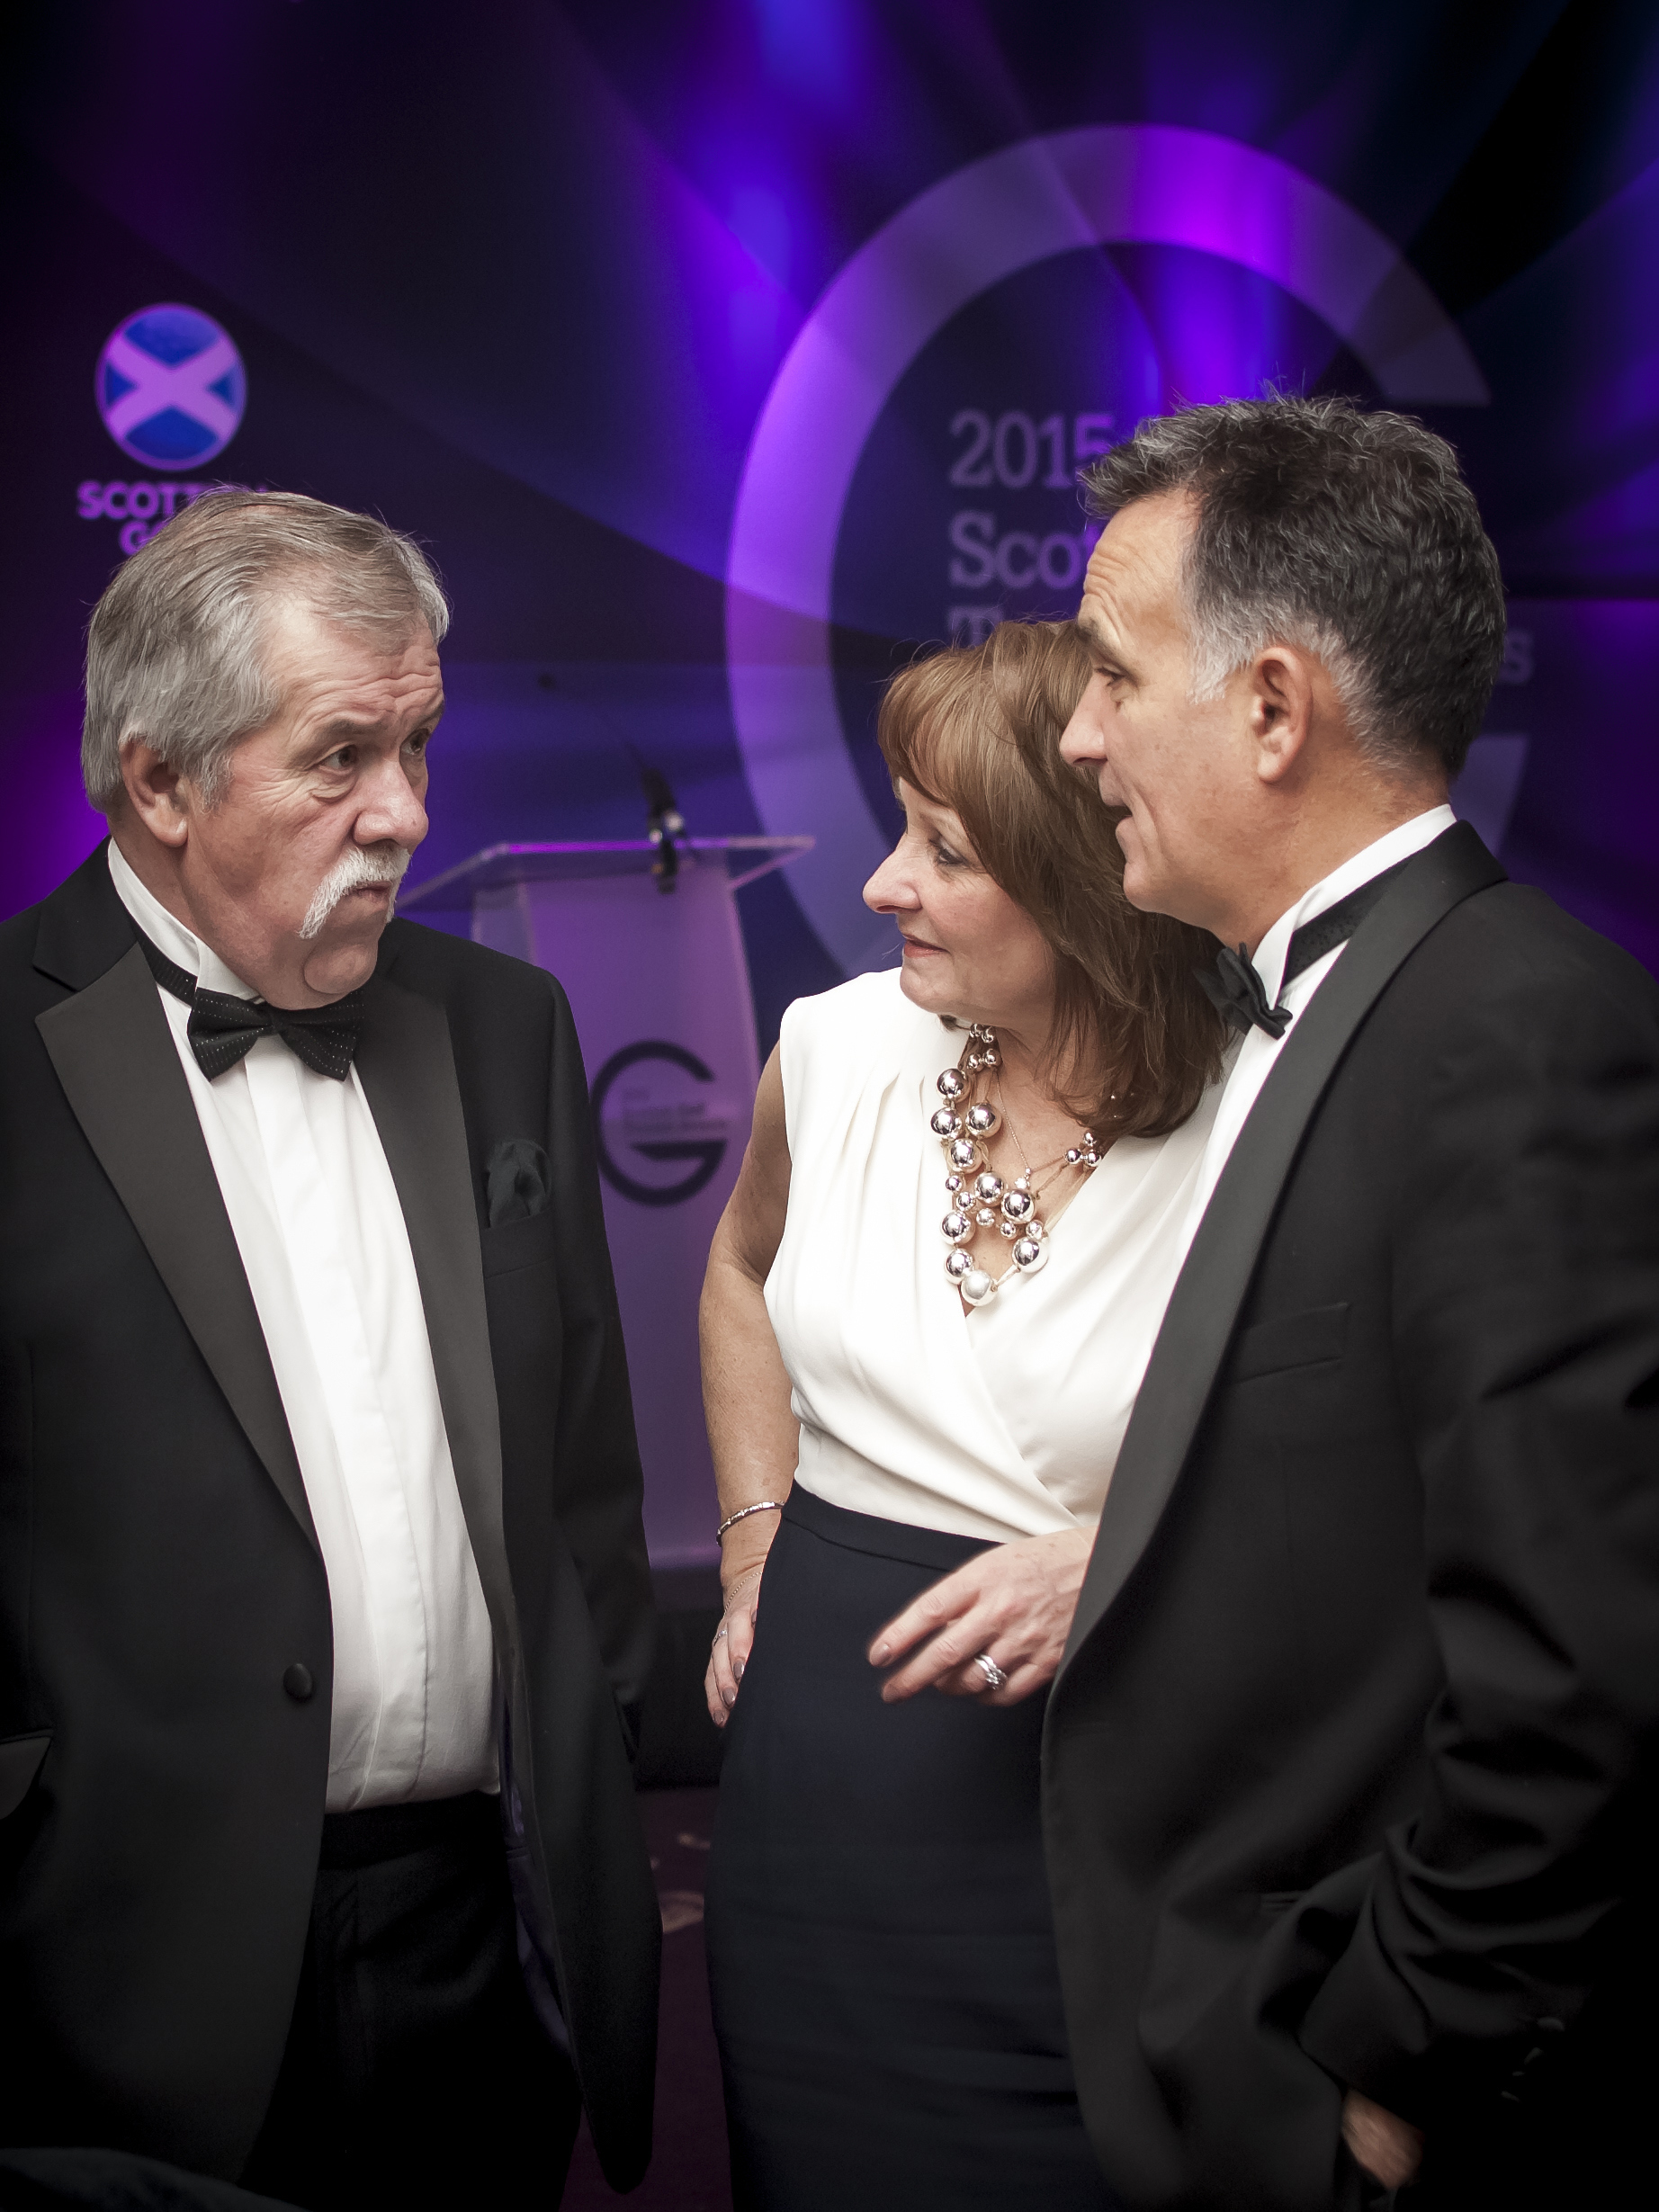 PerryGolf Co-Founder, Colin Dalgleish, receives a Special Recognition Award from at the 2015 Scottish Golf Tourism Awards